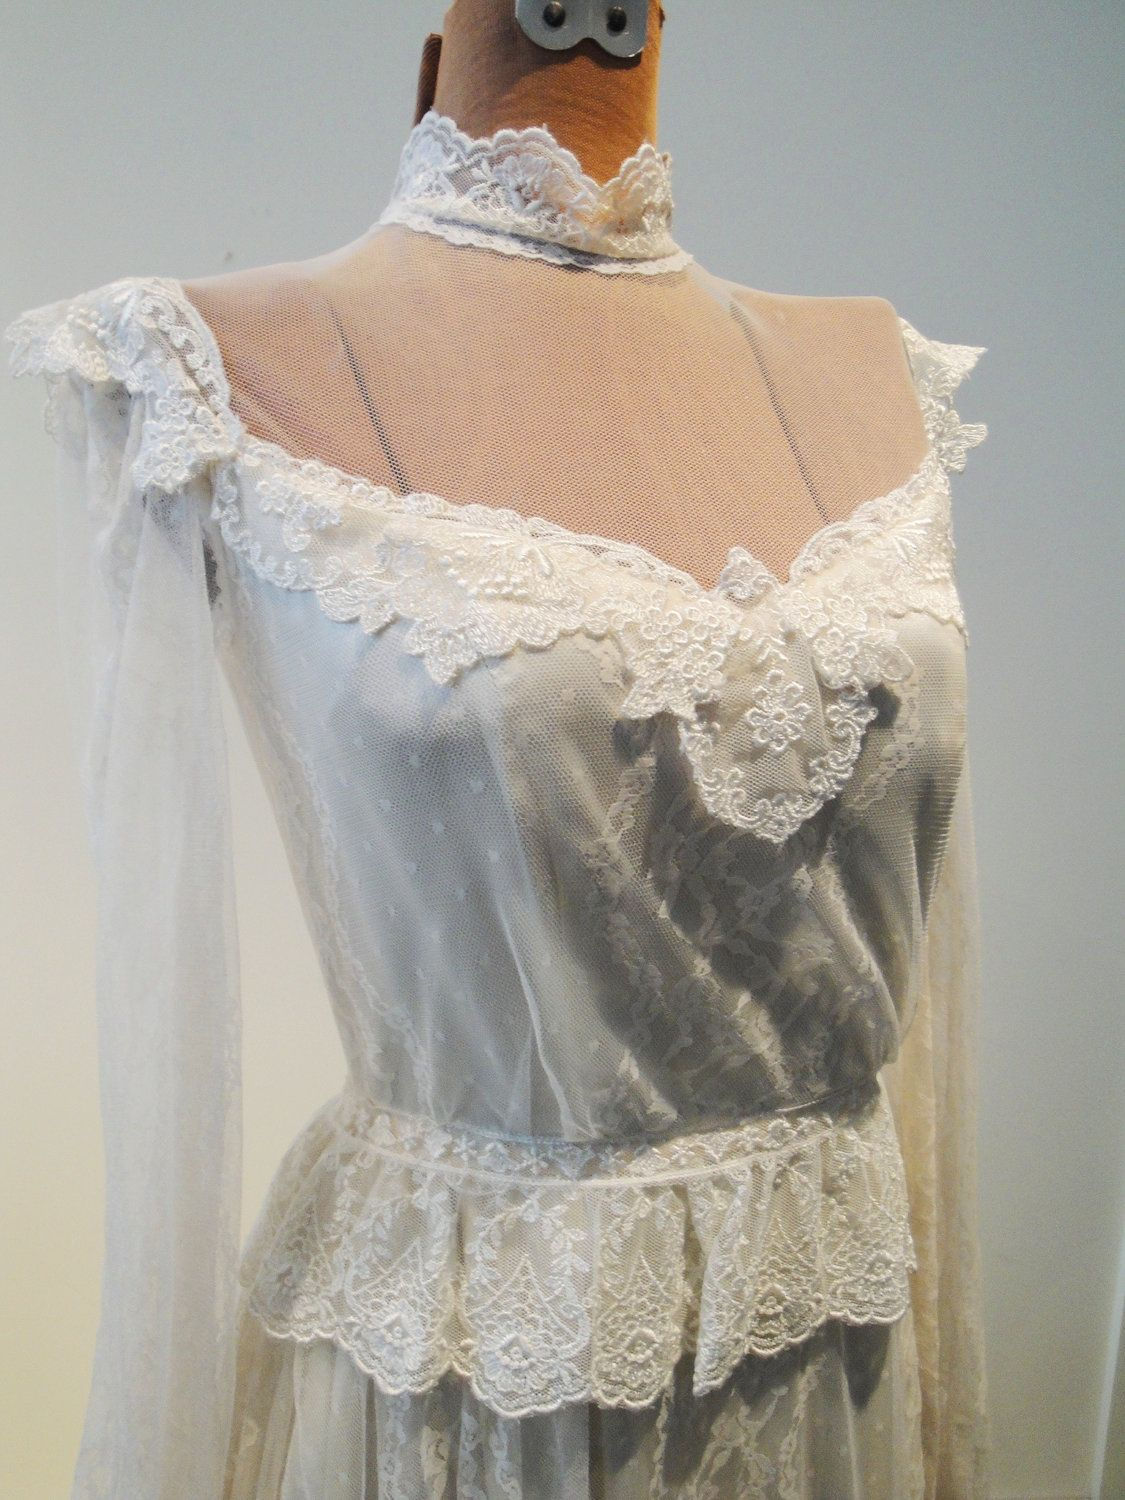 Neckline us classic gown in cream lace with train size small